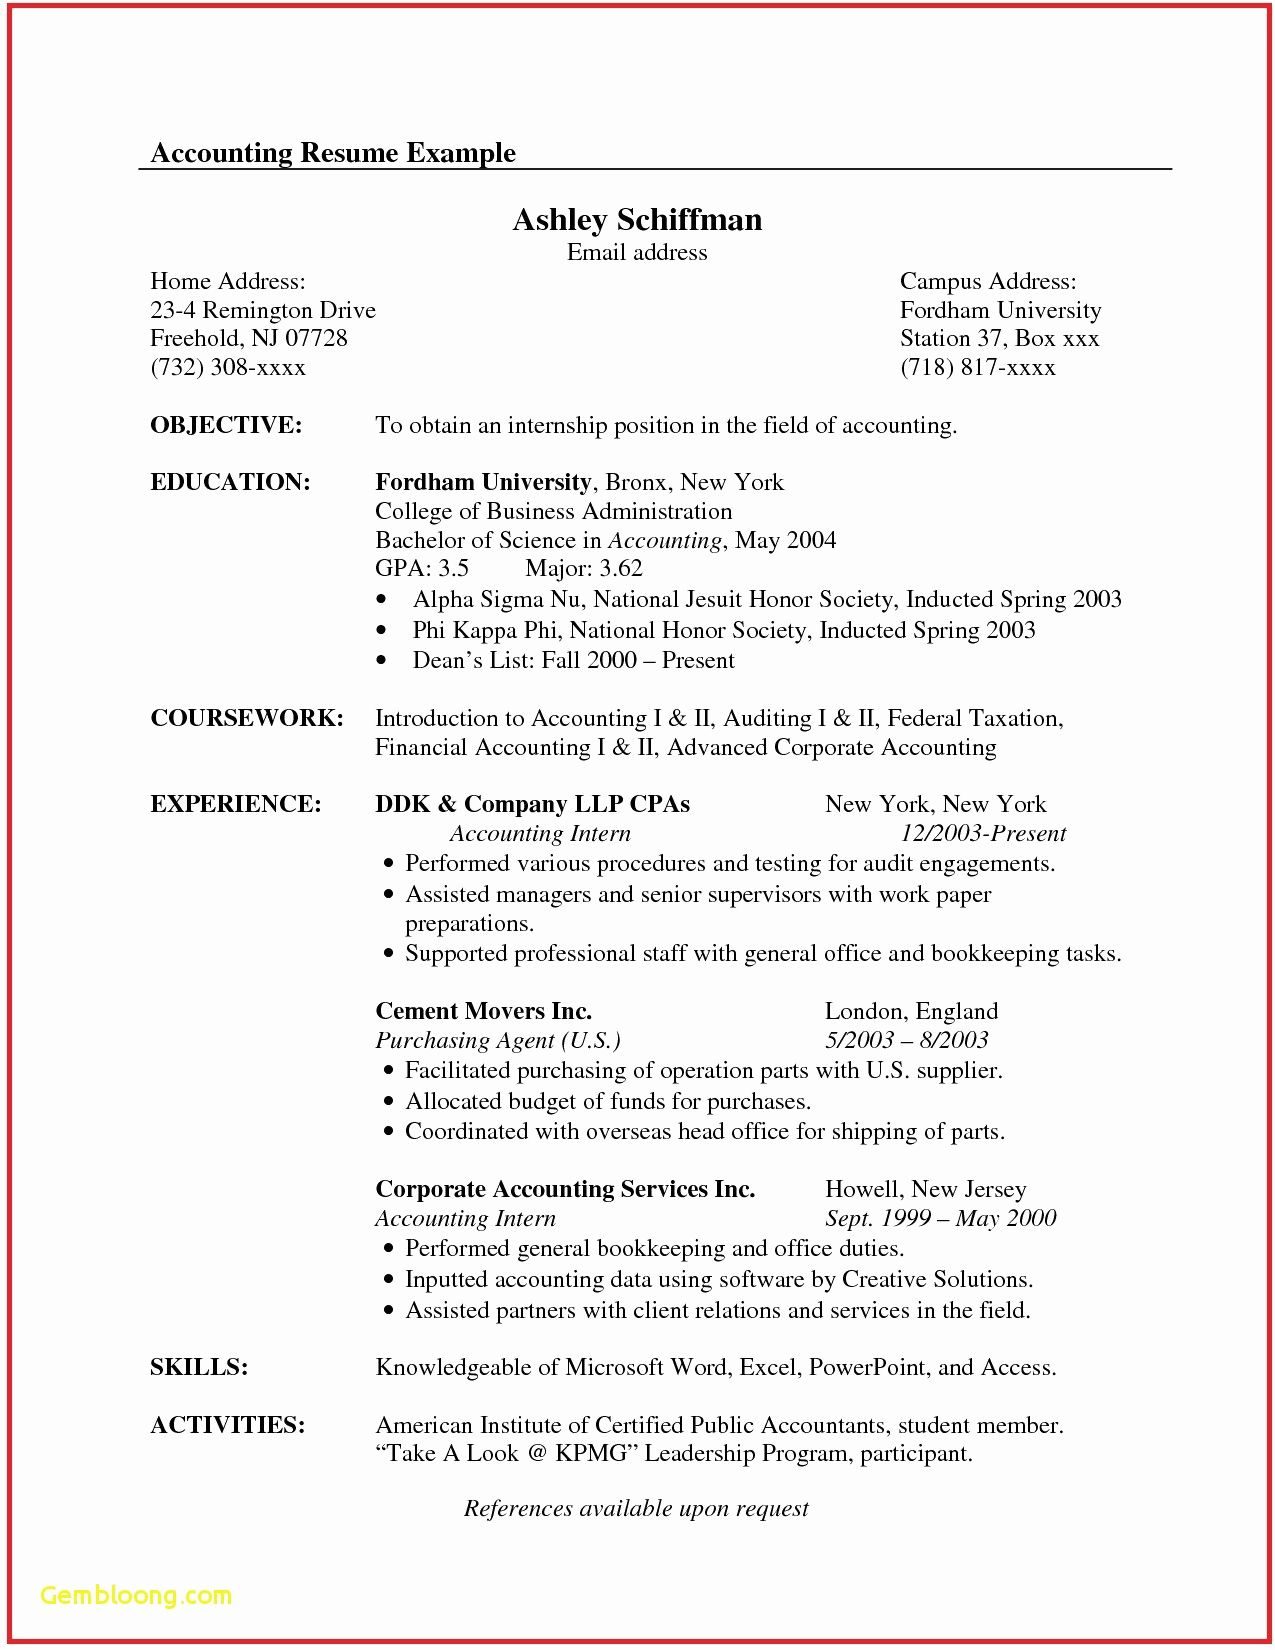 68 New Photos Of Business Accounting Resume Examples With Images